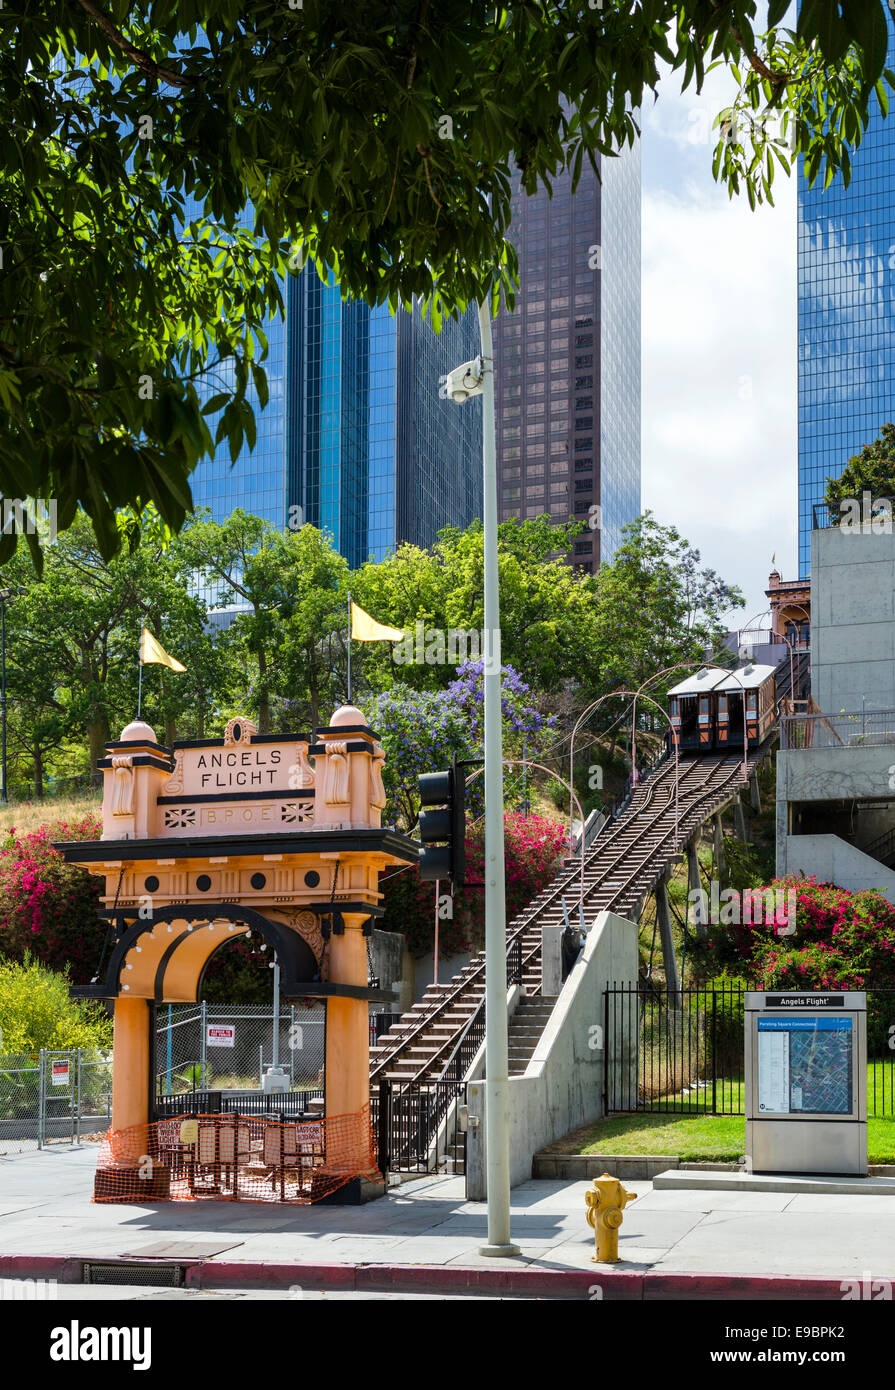 Angels Flight, Los Angels. Angel's Flight funicular between Hill St and California Plaza, Los Angeles, California, - Stock Image